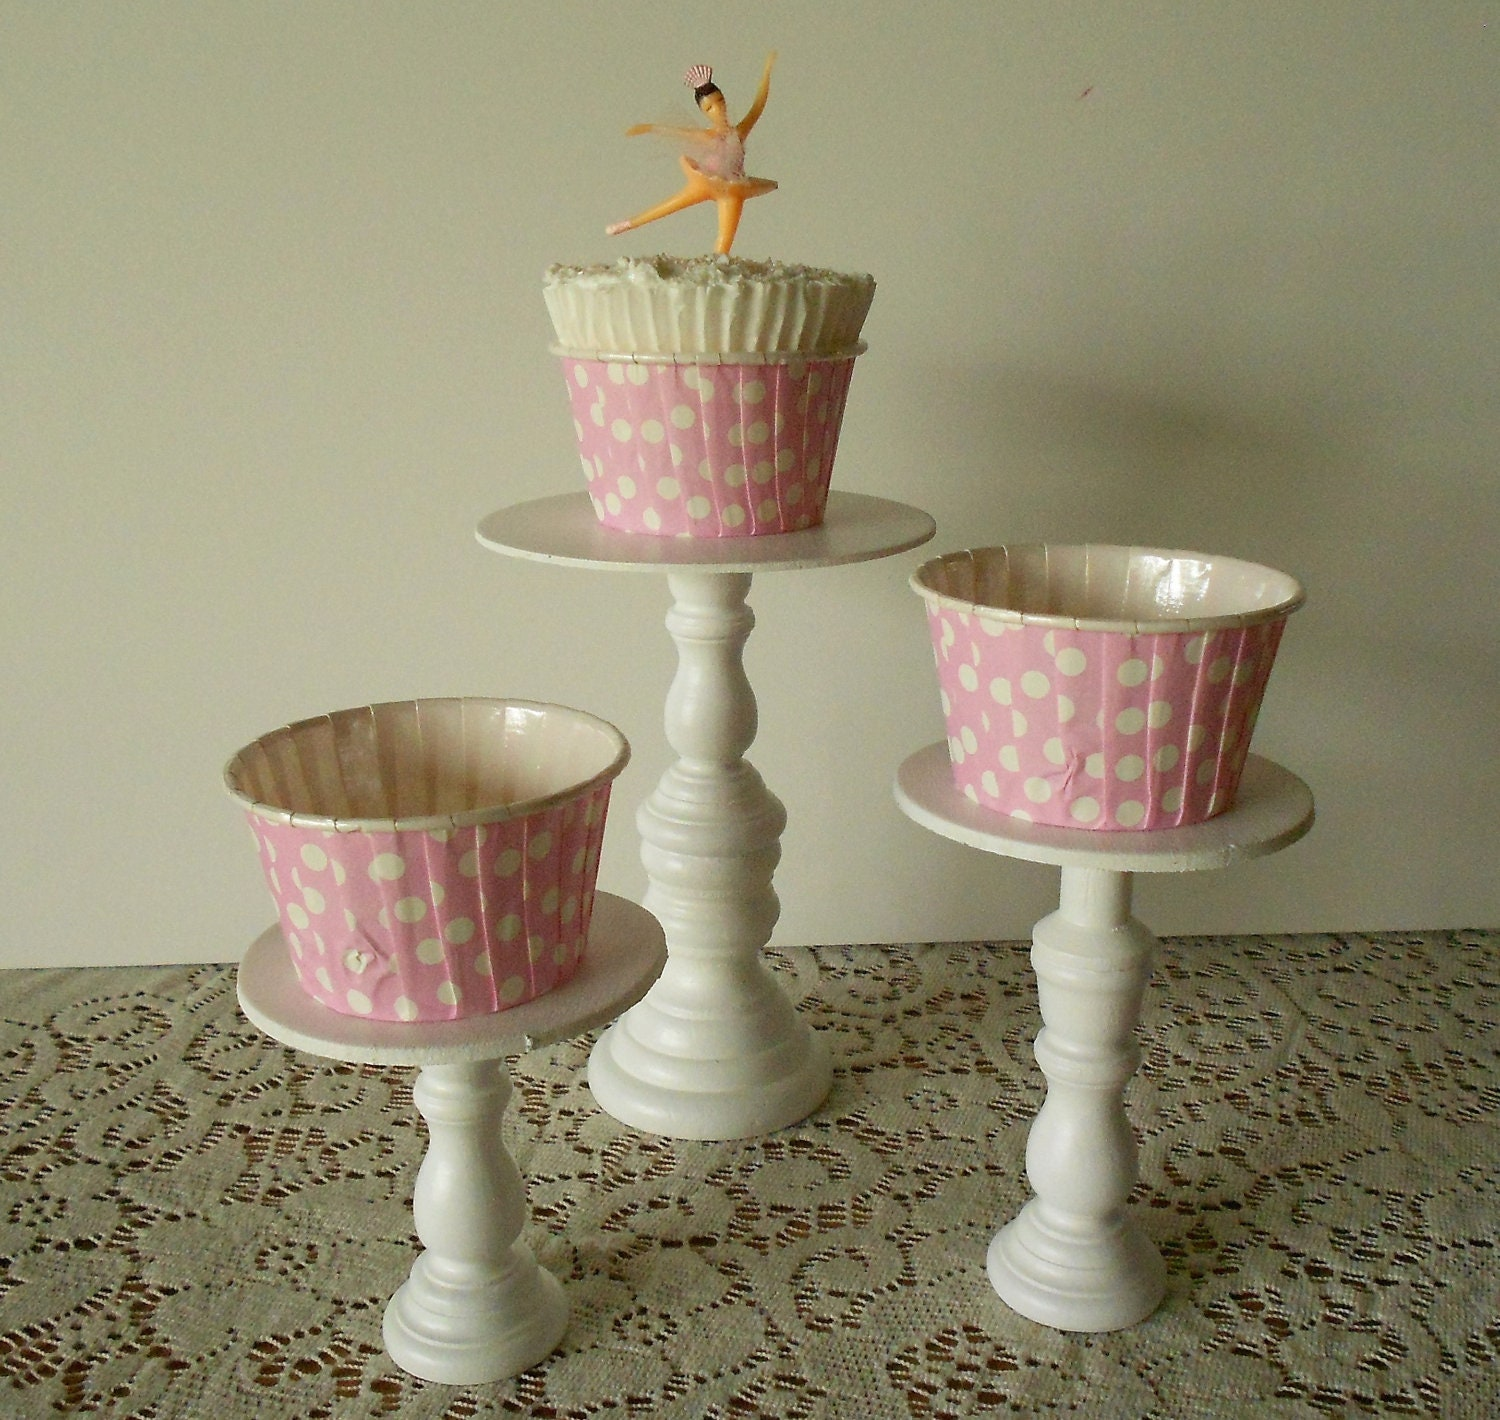 3 Varied Sizes Mini Wood Cupcake Stands Pedestals Or Cake Pop